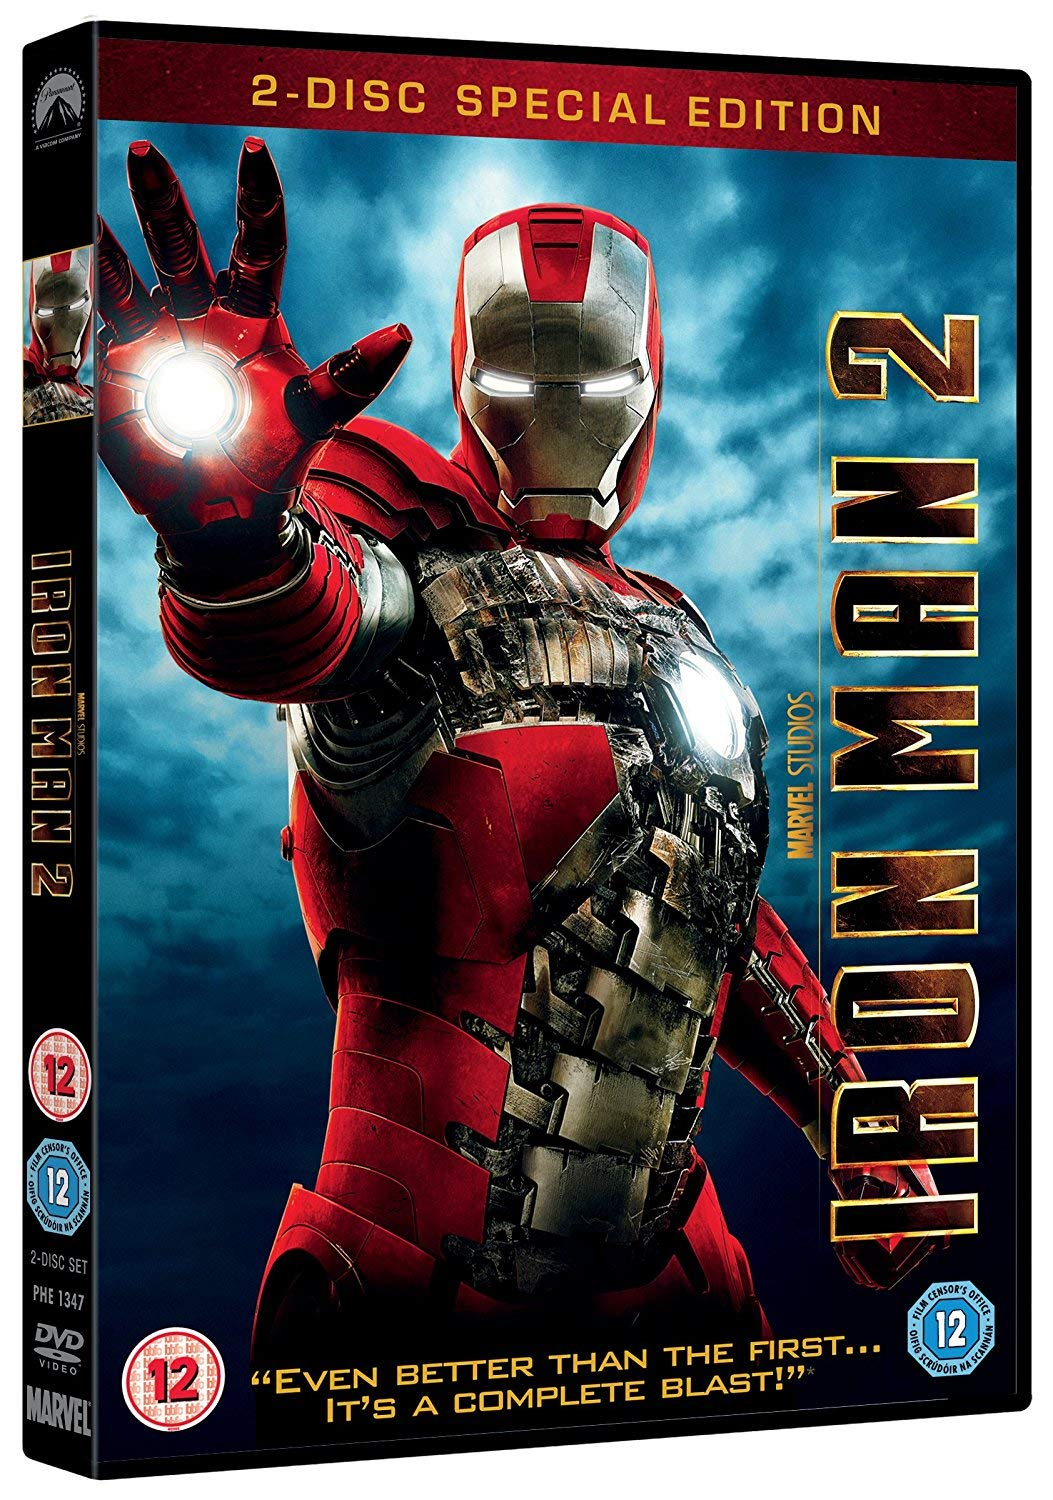 Iron Man 2 2-Disc Special Edition Edizione: Regno Unito Reino Unido DVD: Amazon.es: Iron Man 2: Cine y Series TV